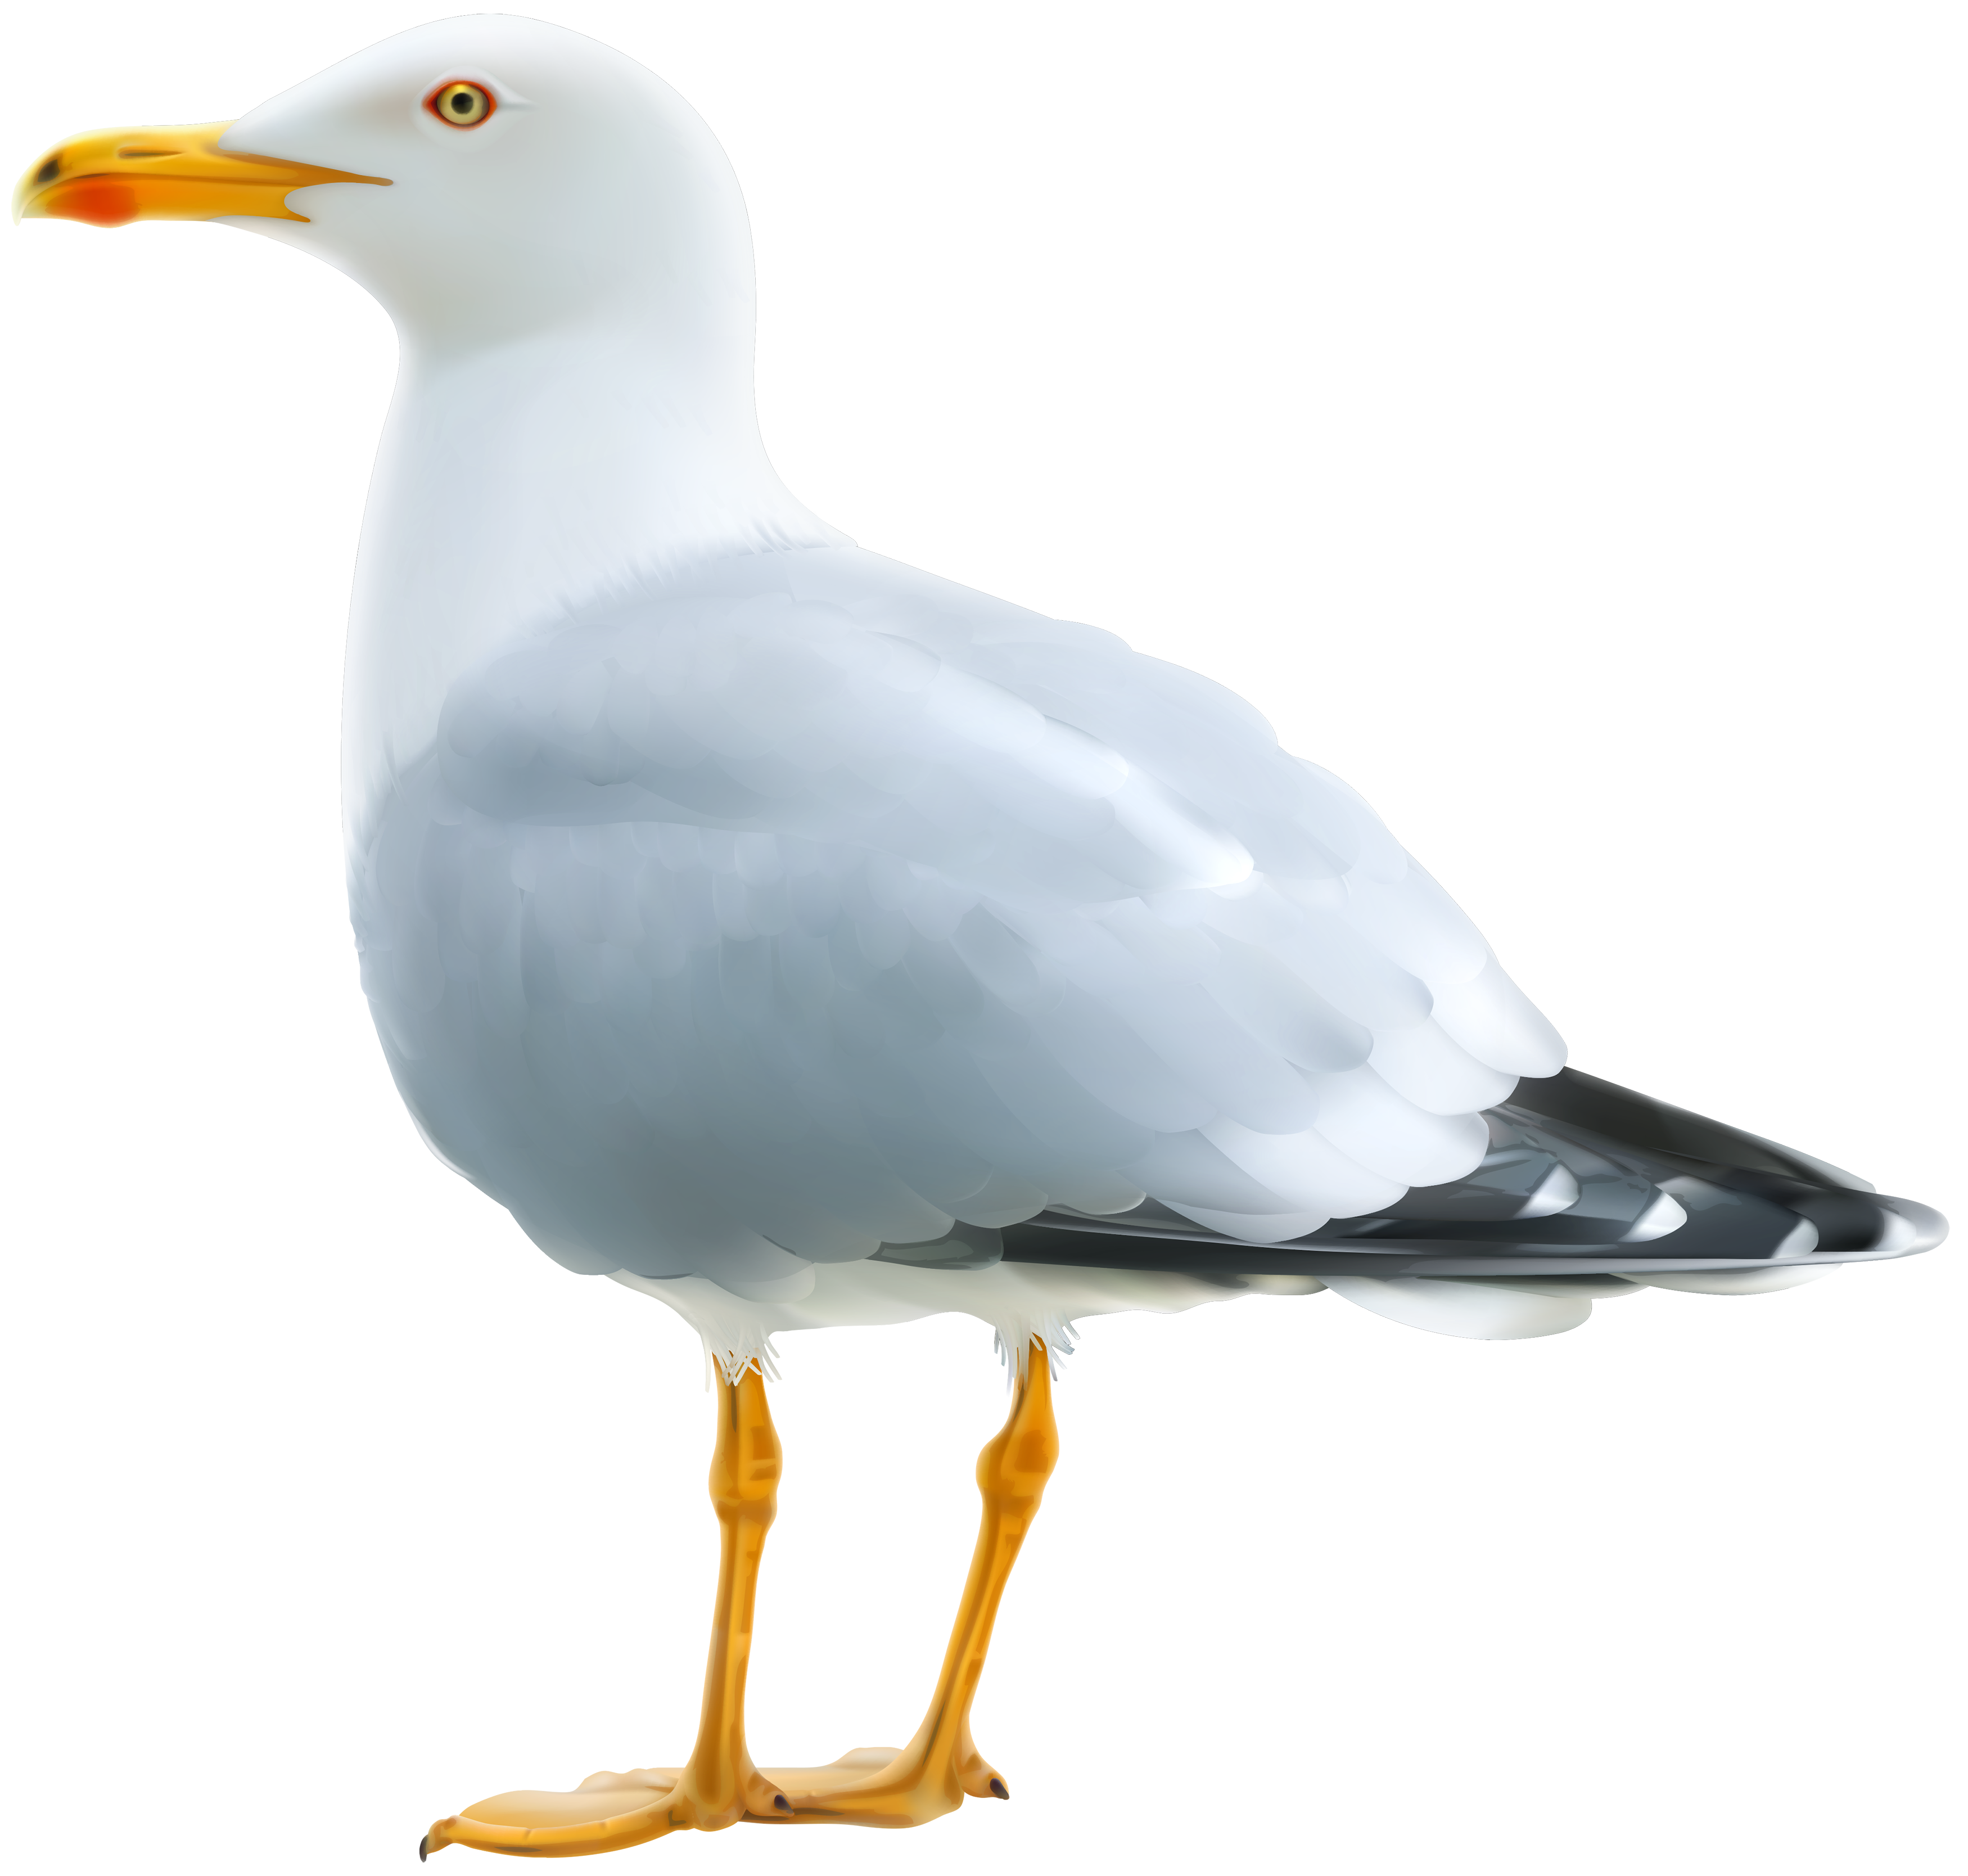 Seagull clipart image